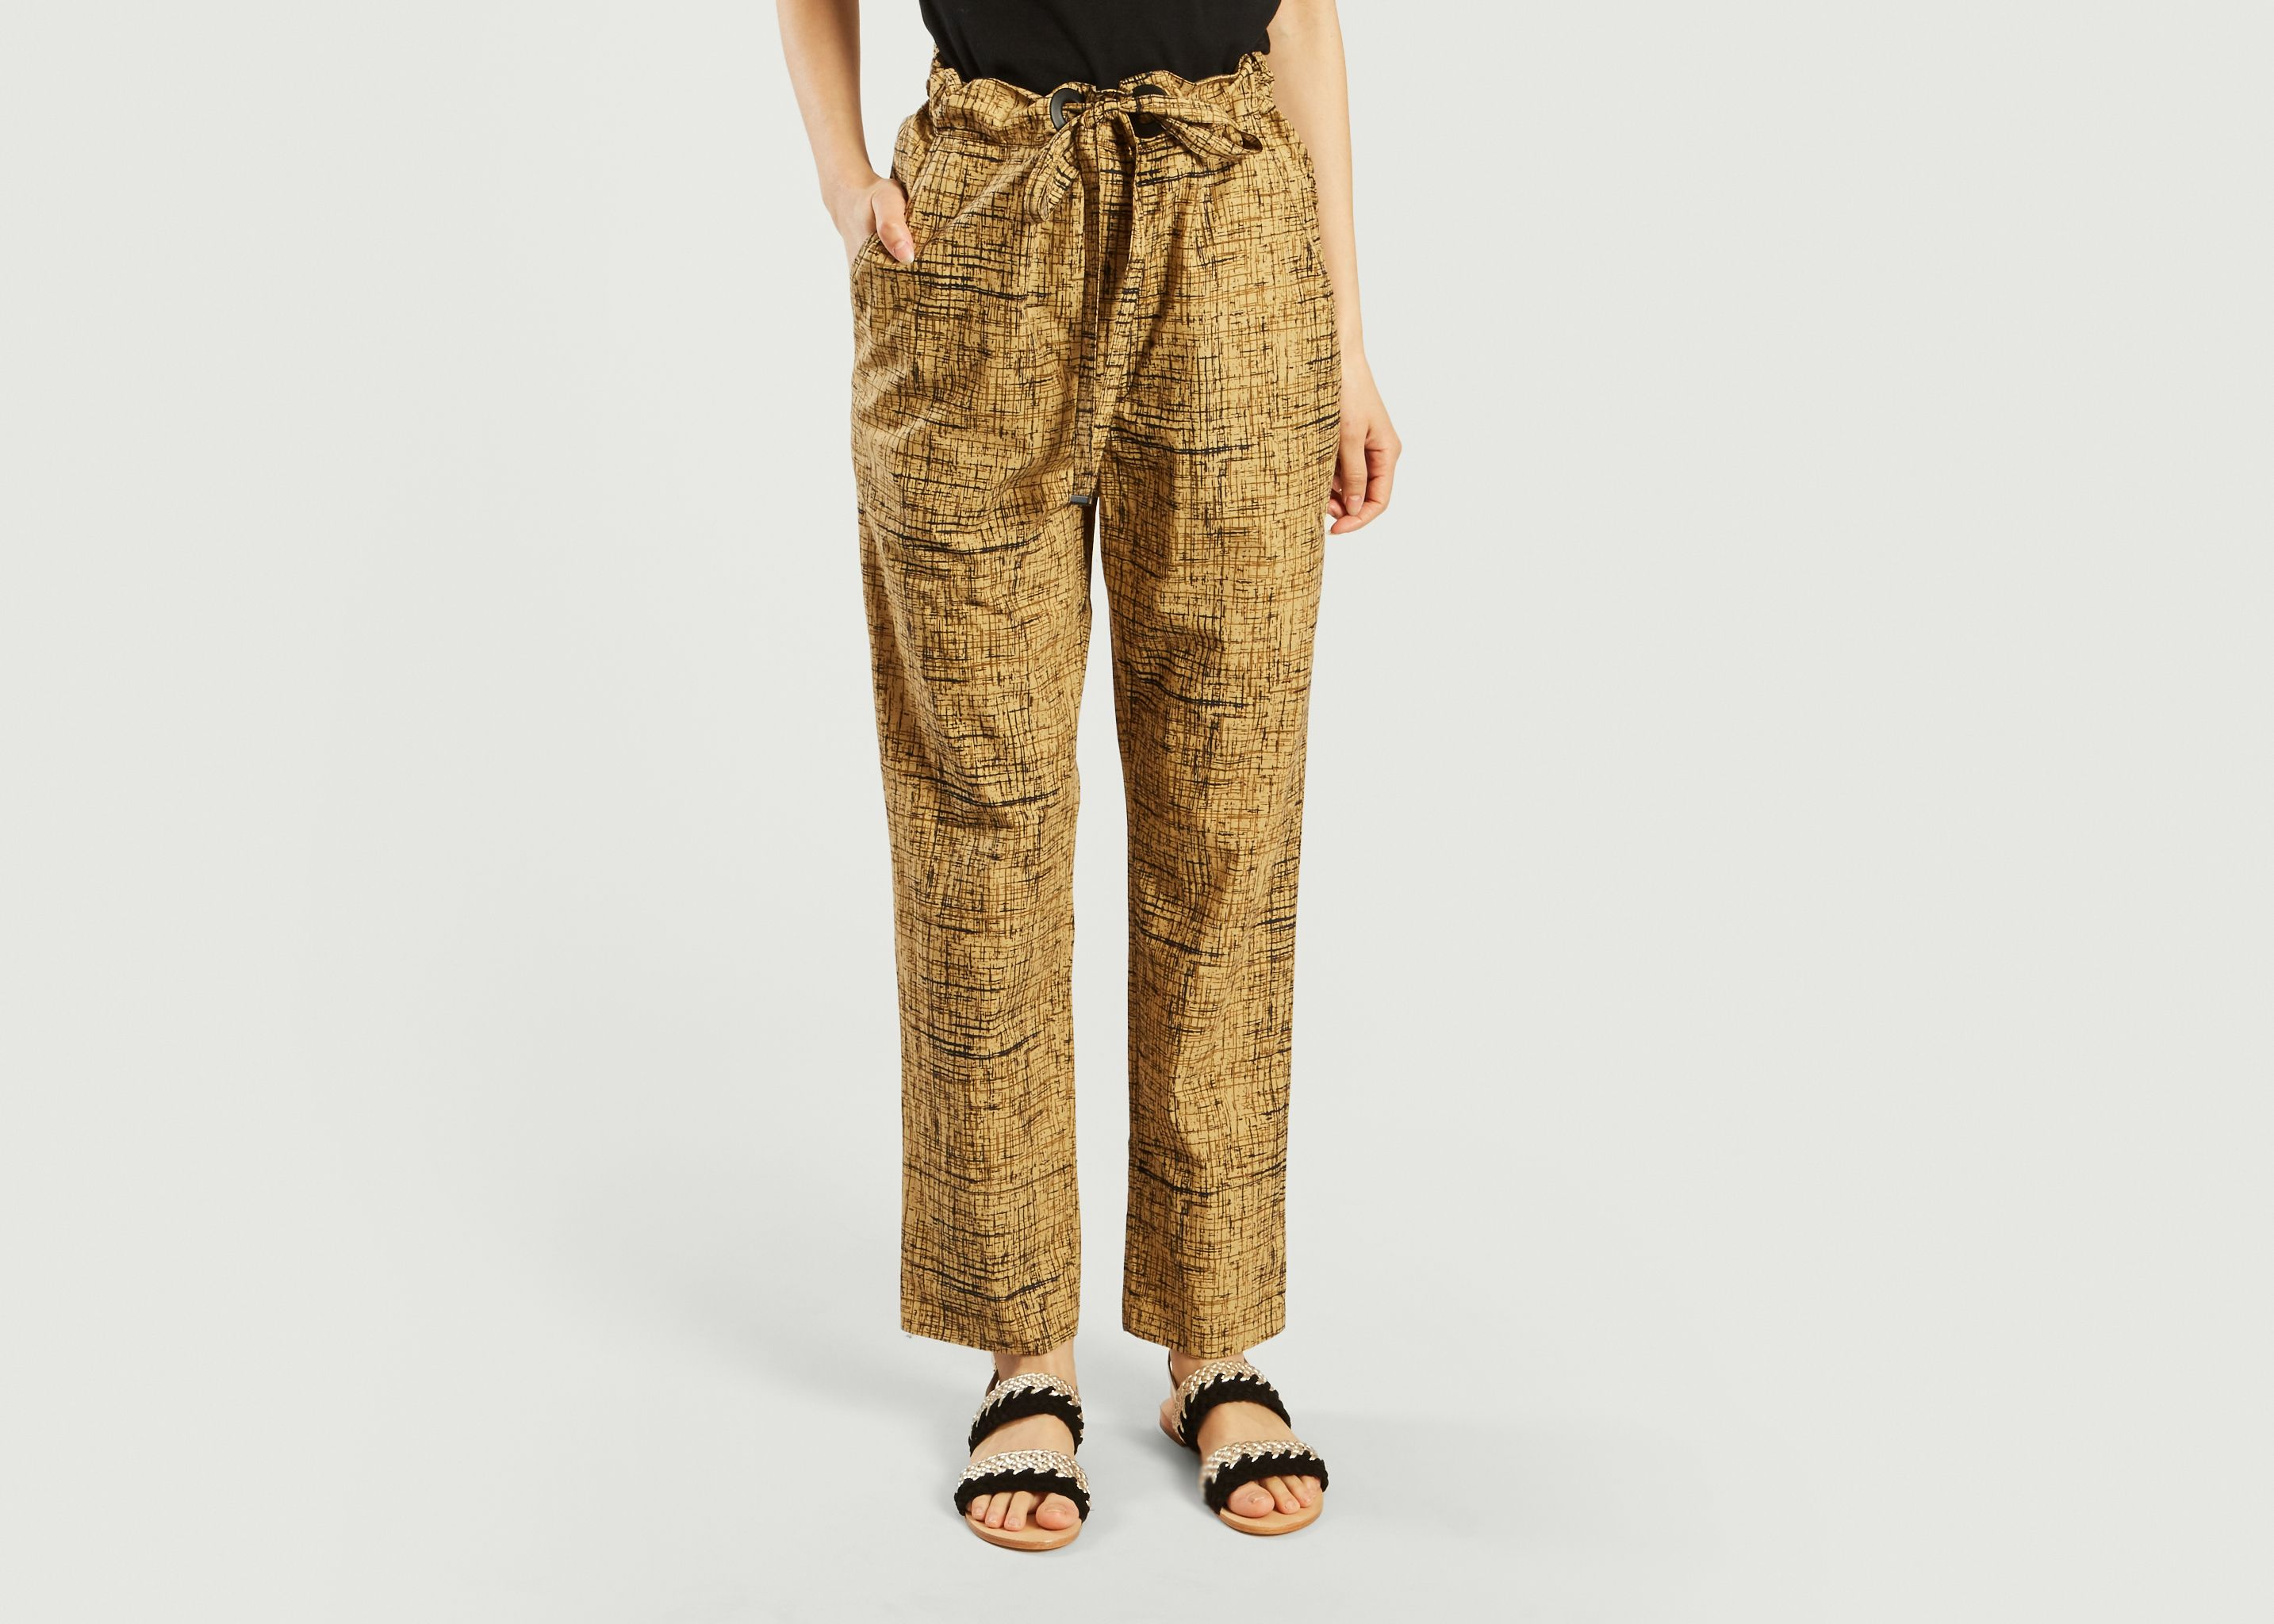 Sale In China TROUSERS - Shorts Laurence Bras Quality From China Wholesale Buy Cheap Recommend Outlet Amazon The Cheapest Cheap Online QUy2Yd3MS